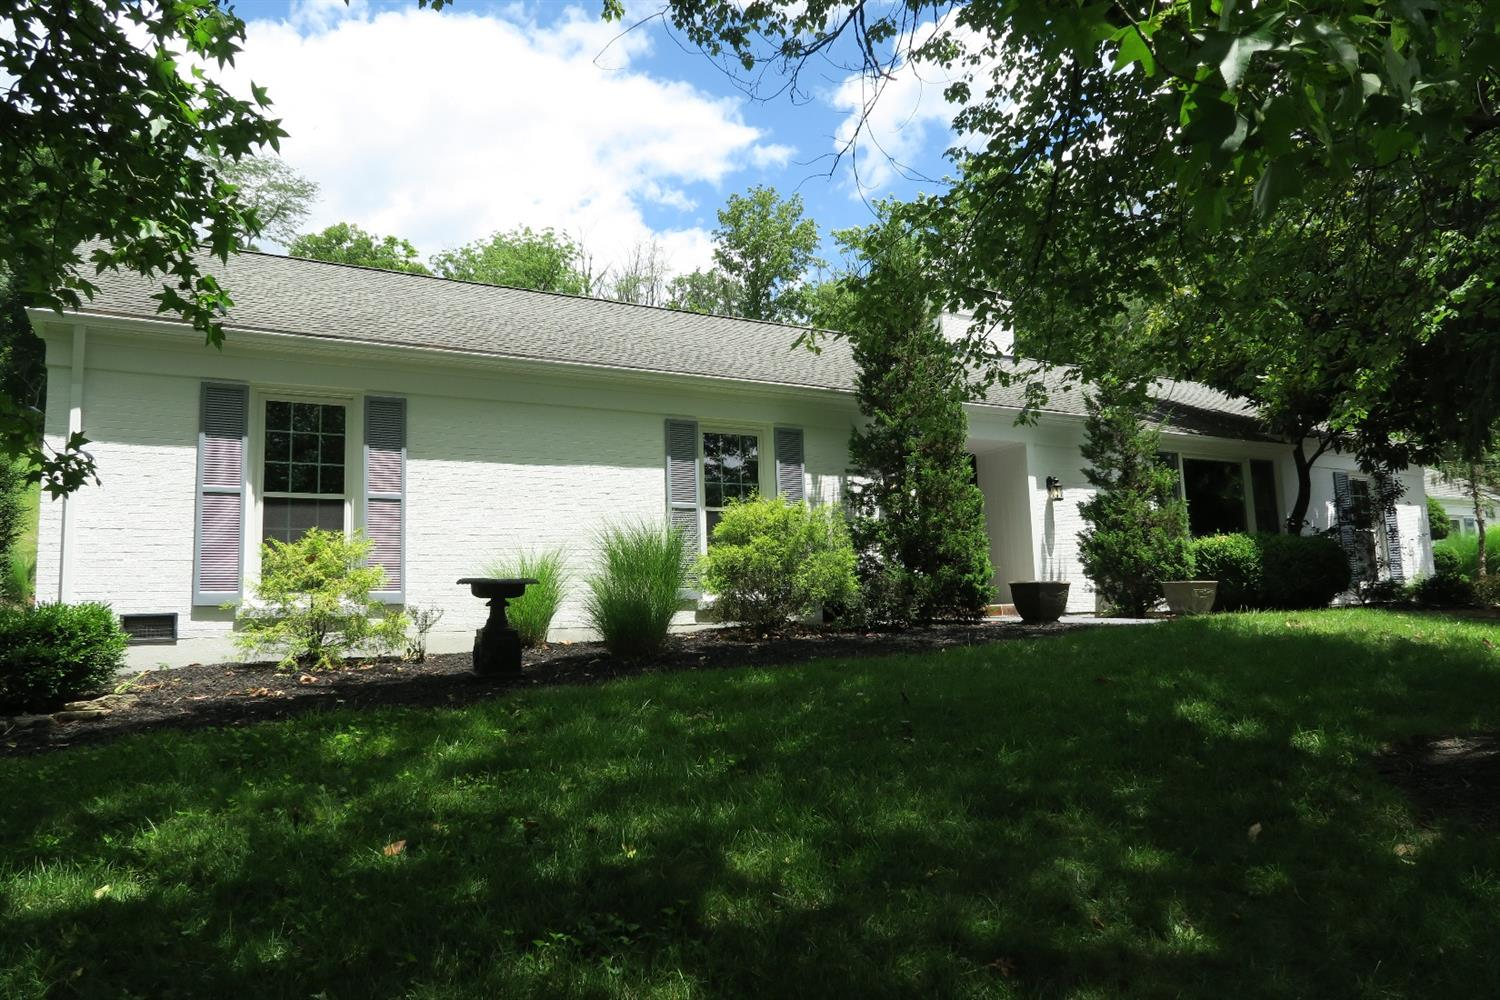 5800 Given Road, Indian Hill, OH 45243